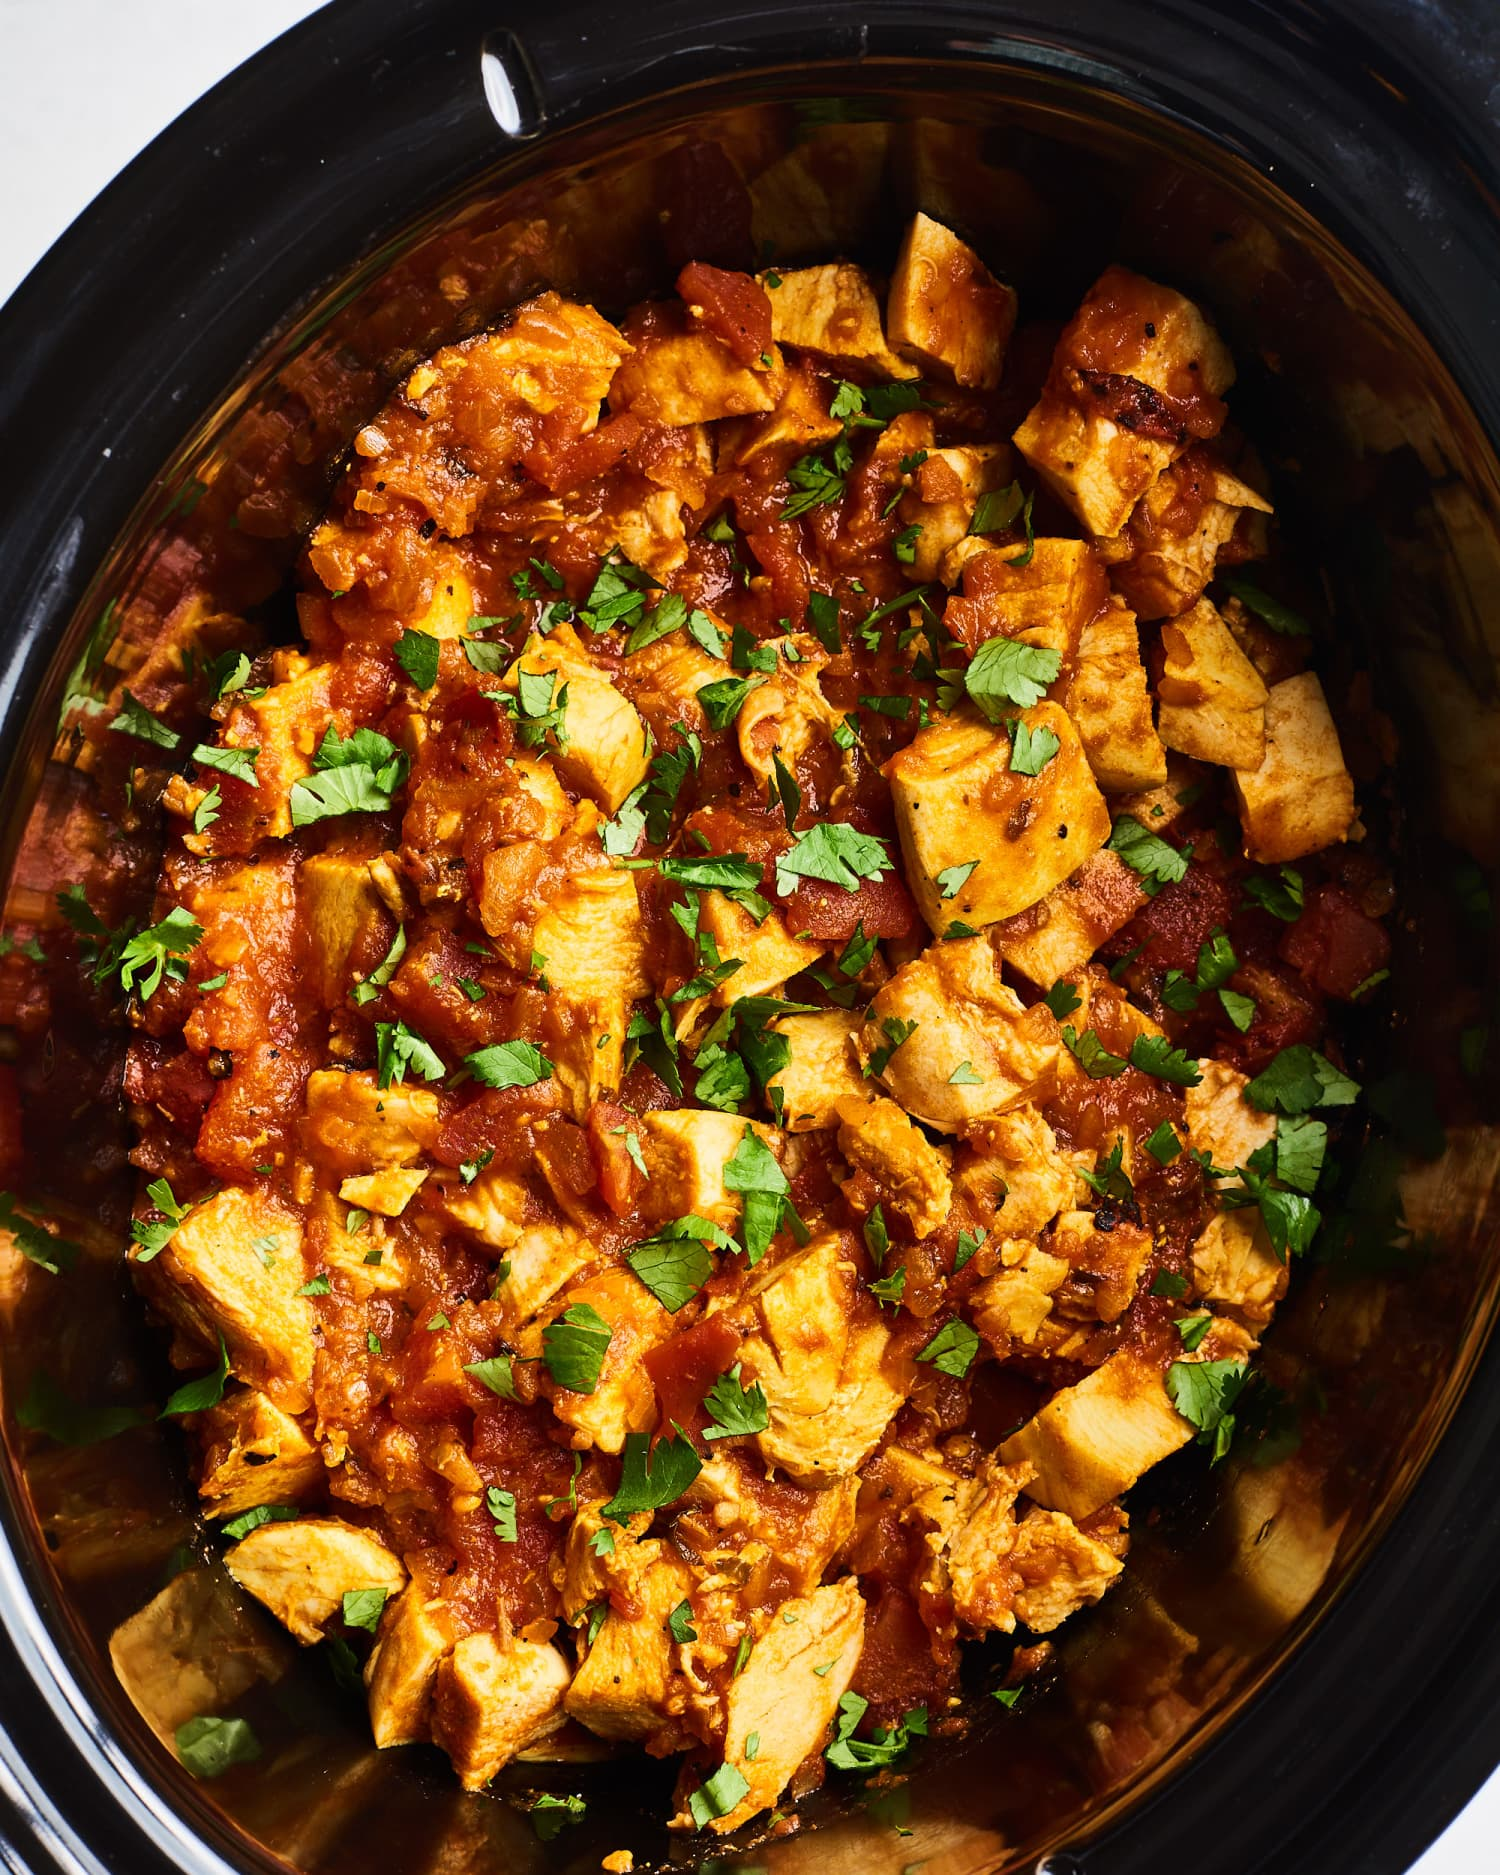 Recipe: Trader Joe's Slow Cooker Chicken Tikka Masala